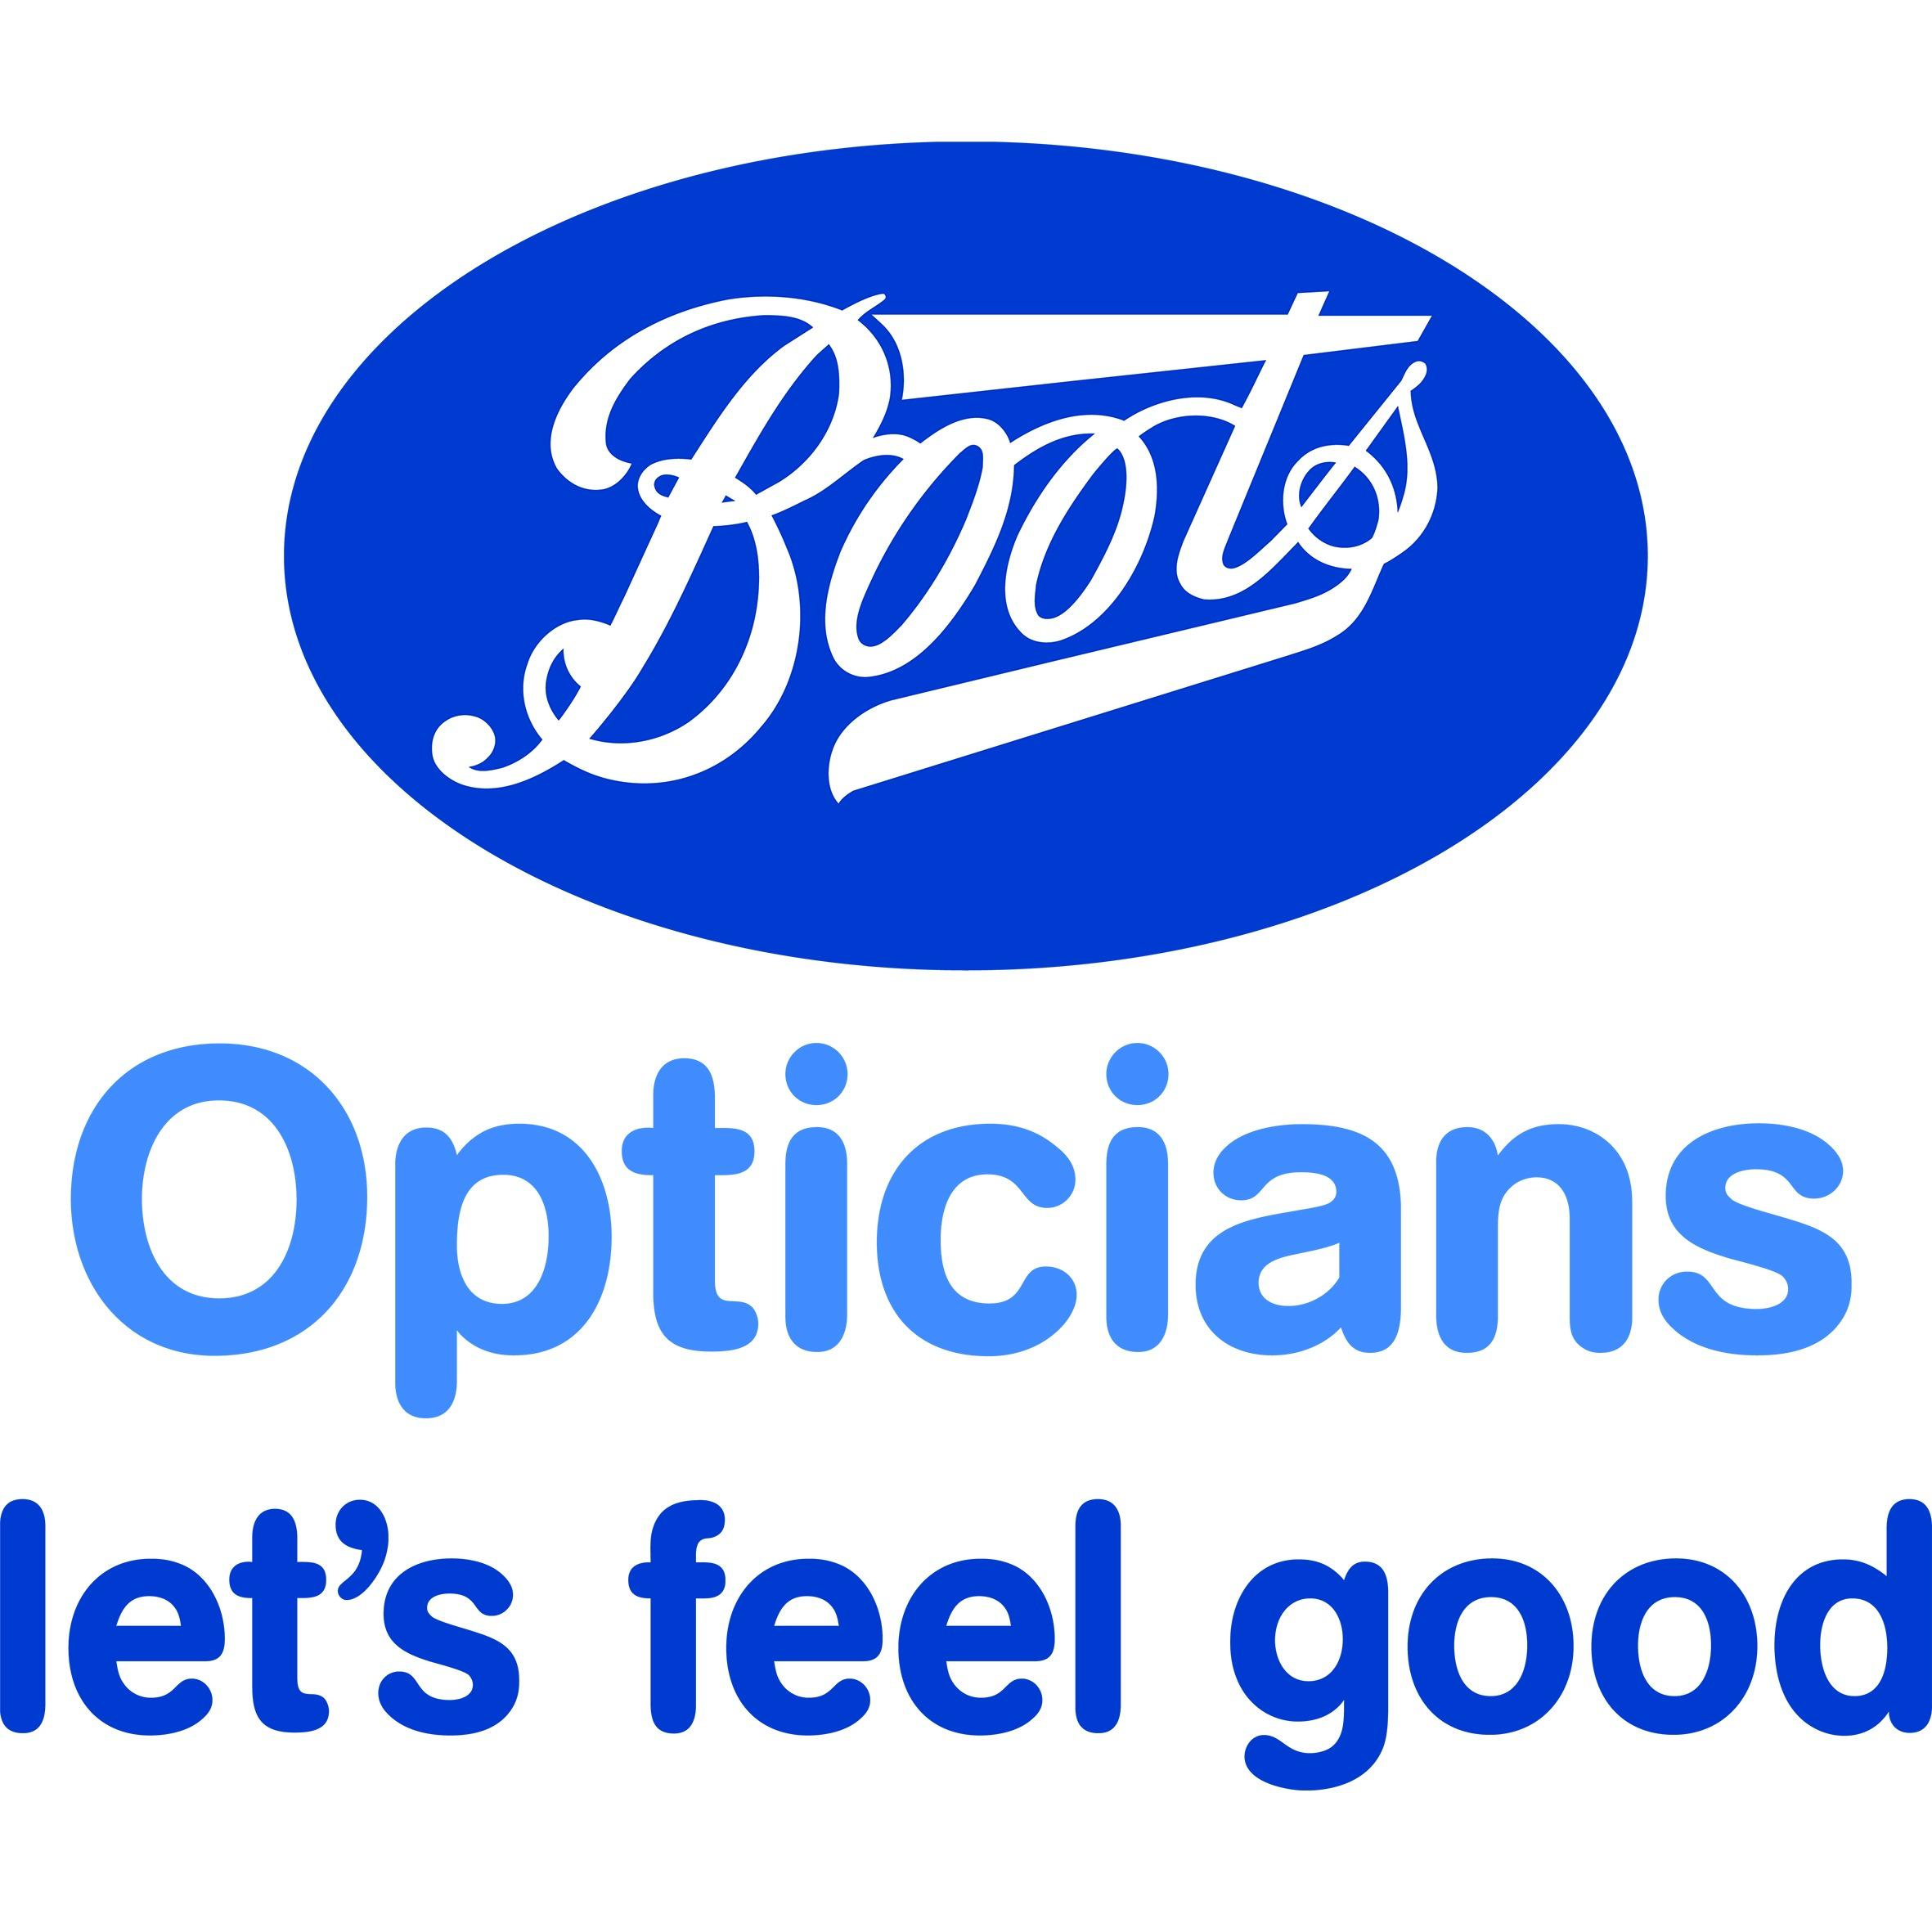 Boots Opticians - Coalville, Leicestershire LE67 3XA - 01530 832018 | ShowMeLocal.com